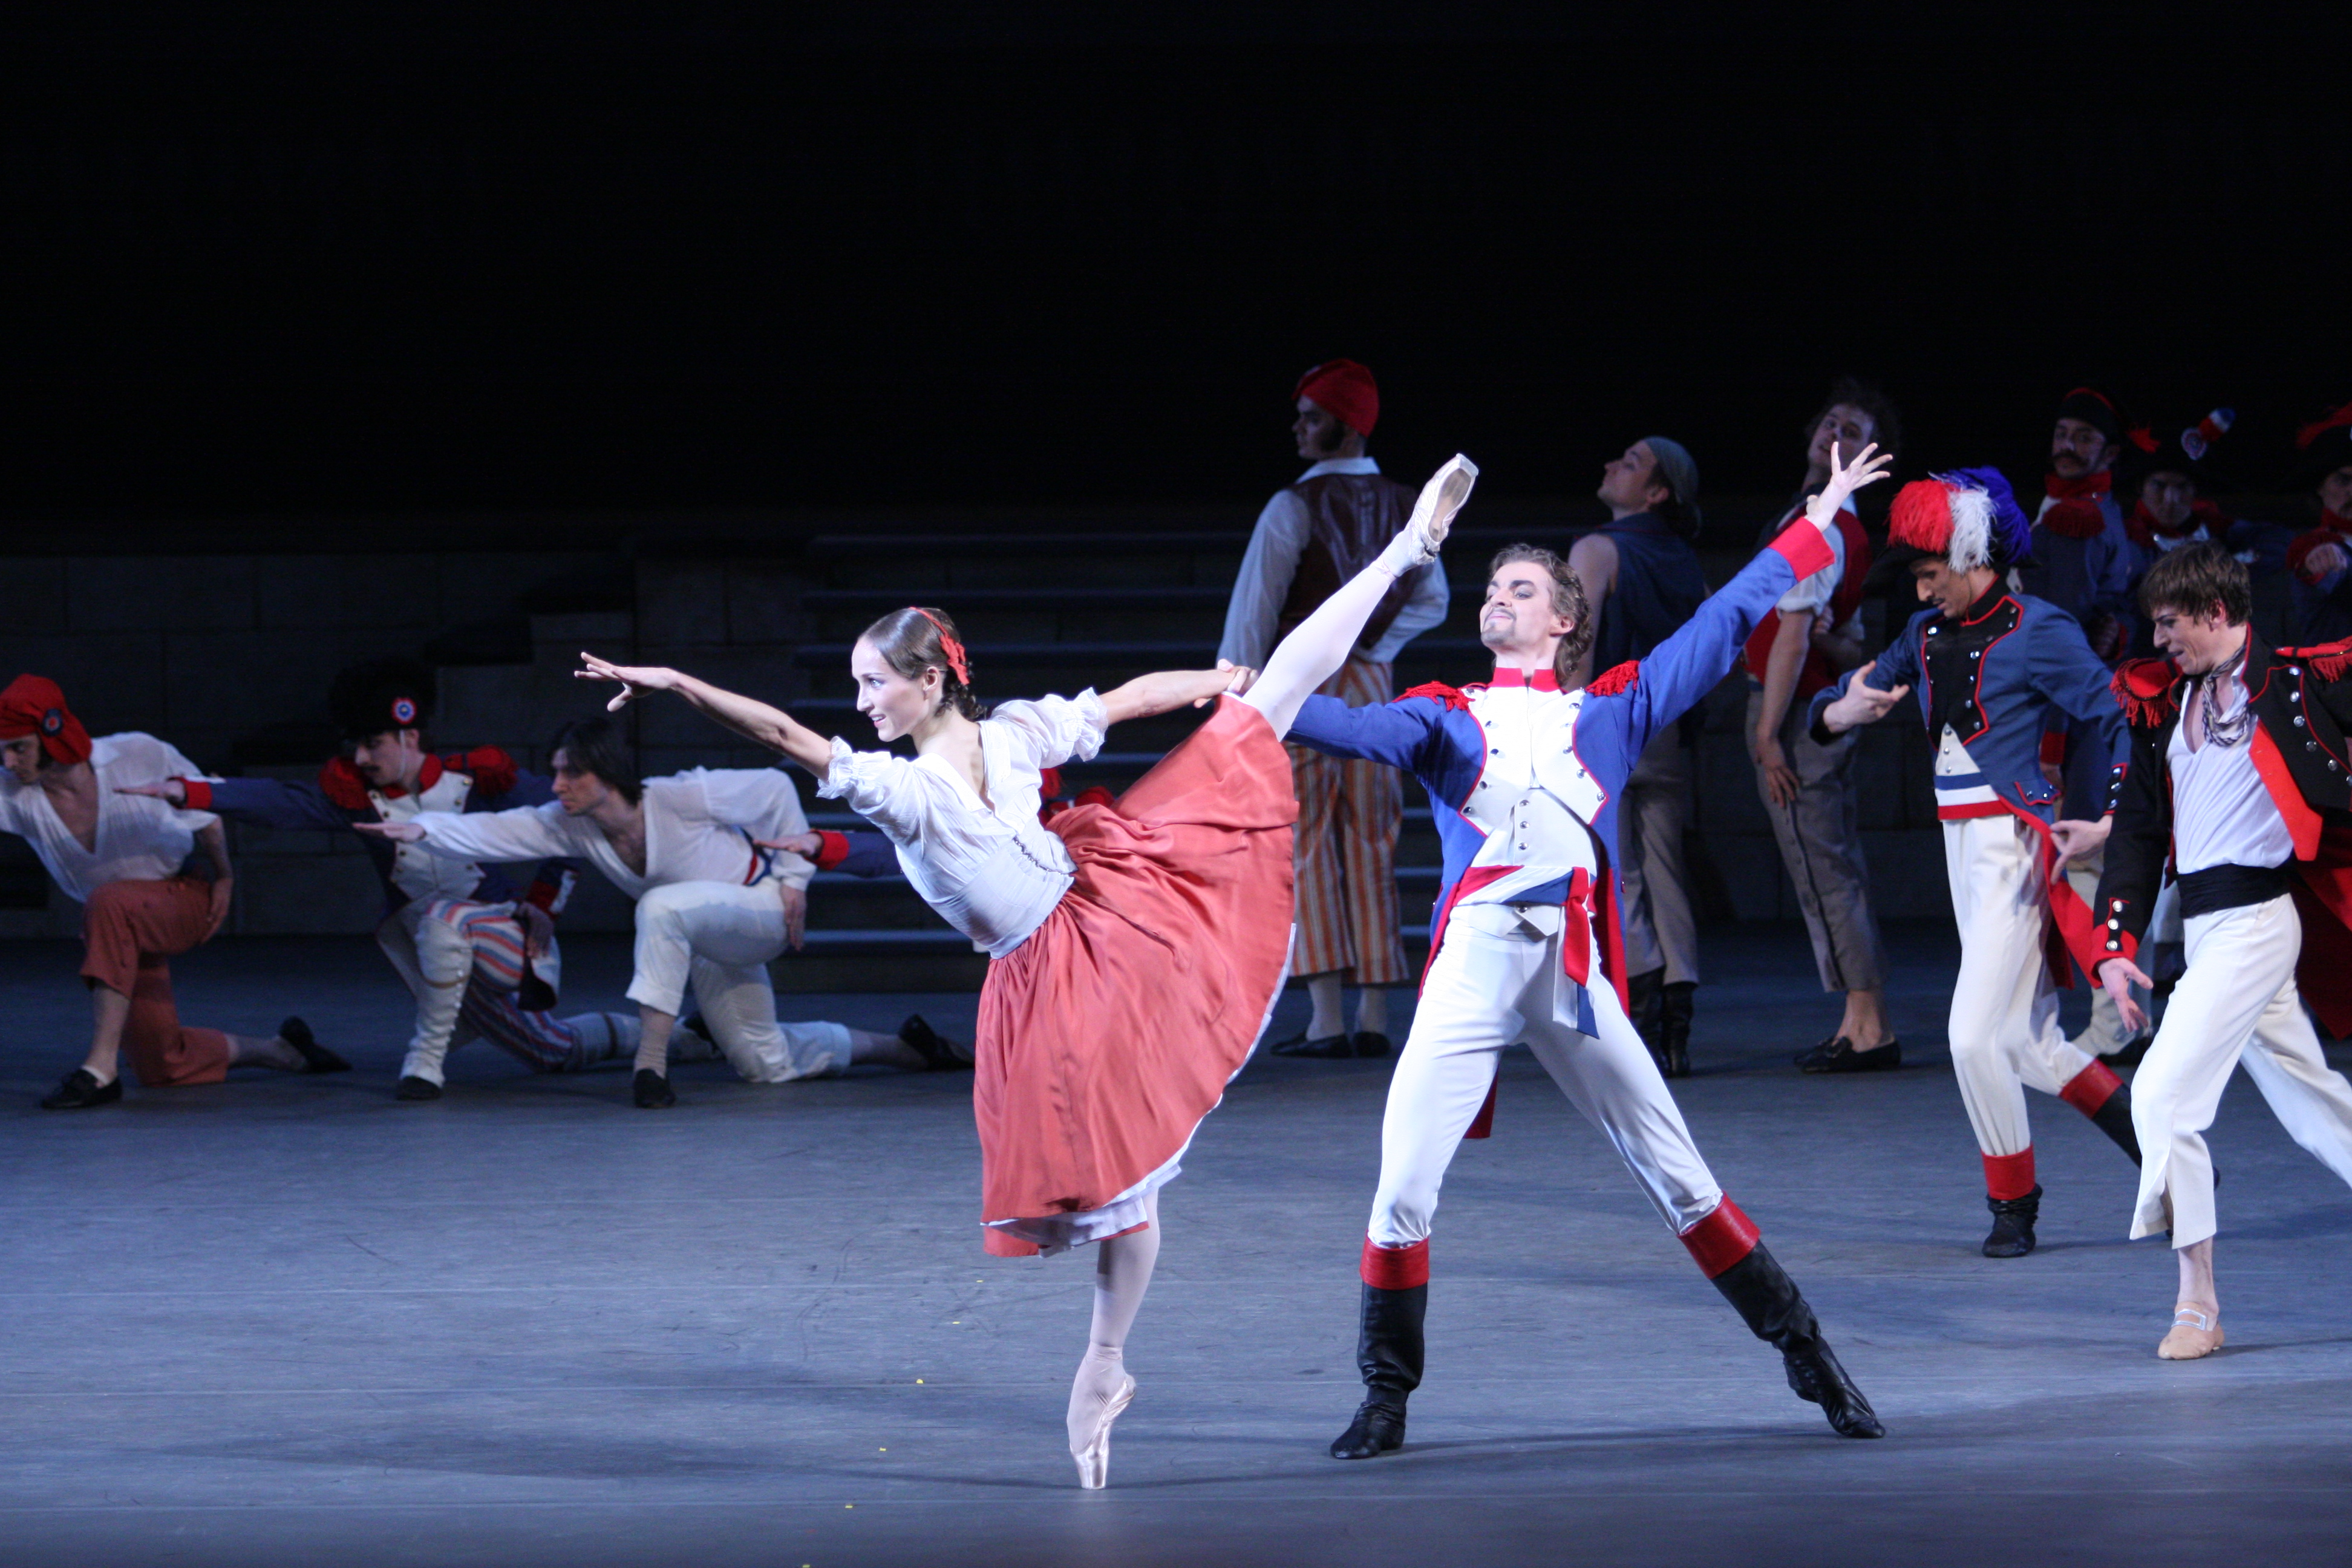 Flames of Paris, Ekaterina Shipulina and Alexander Volchkov (credit: Damir Yusupov)